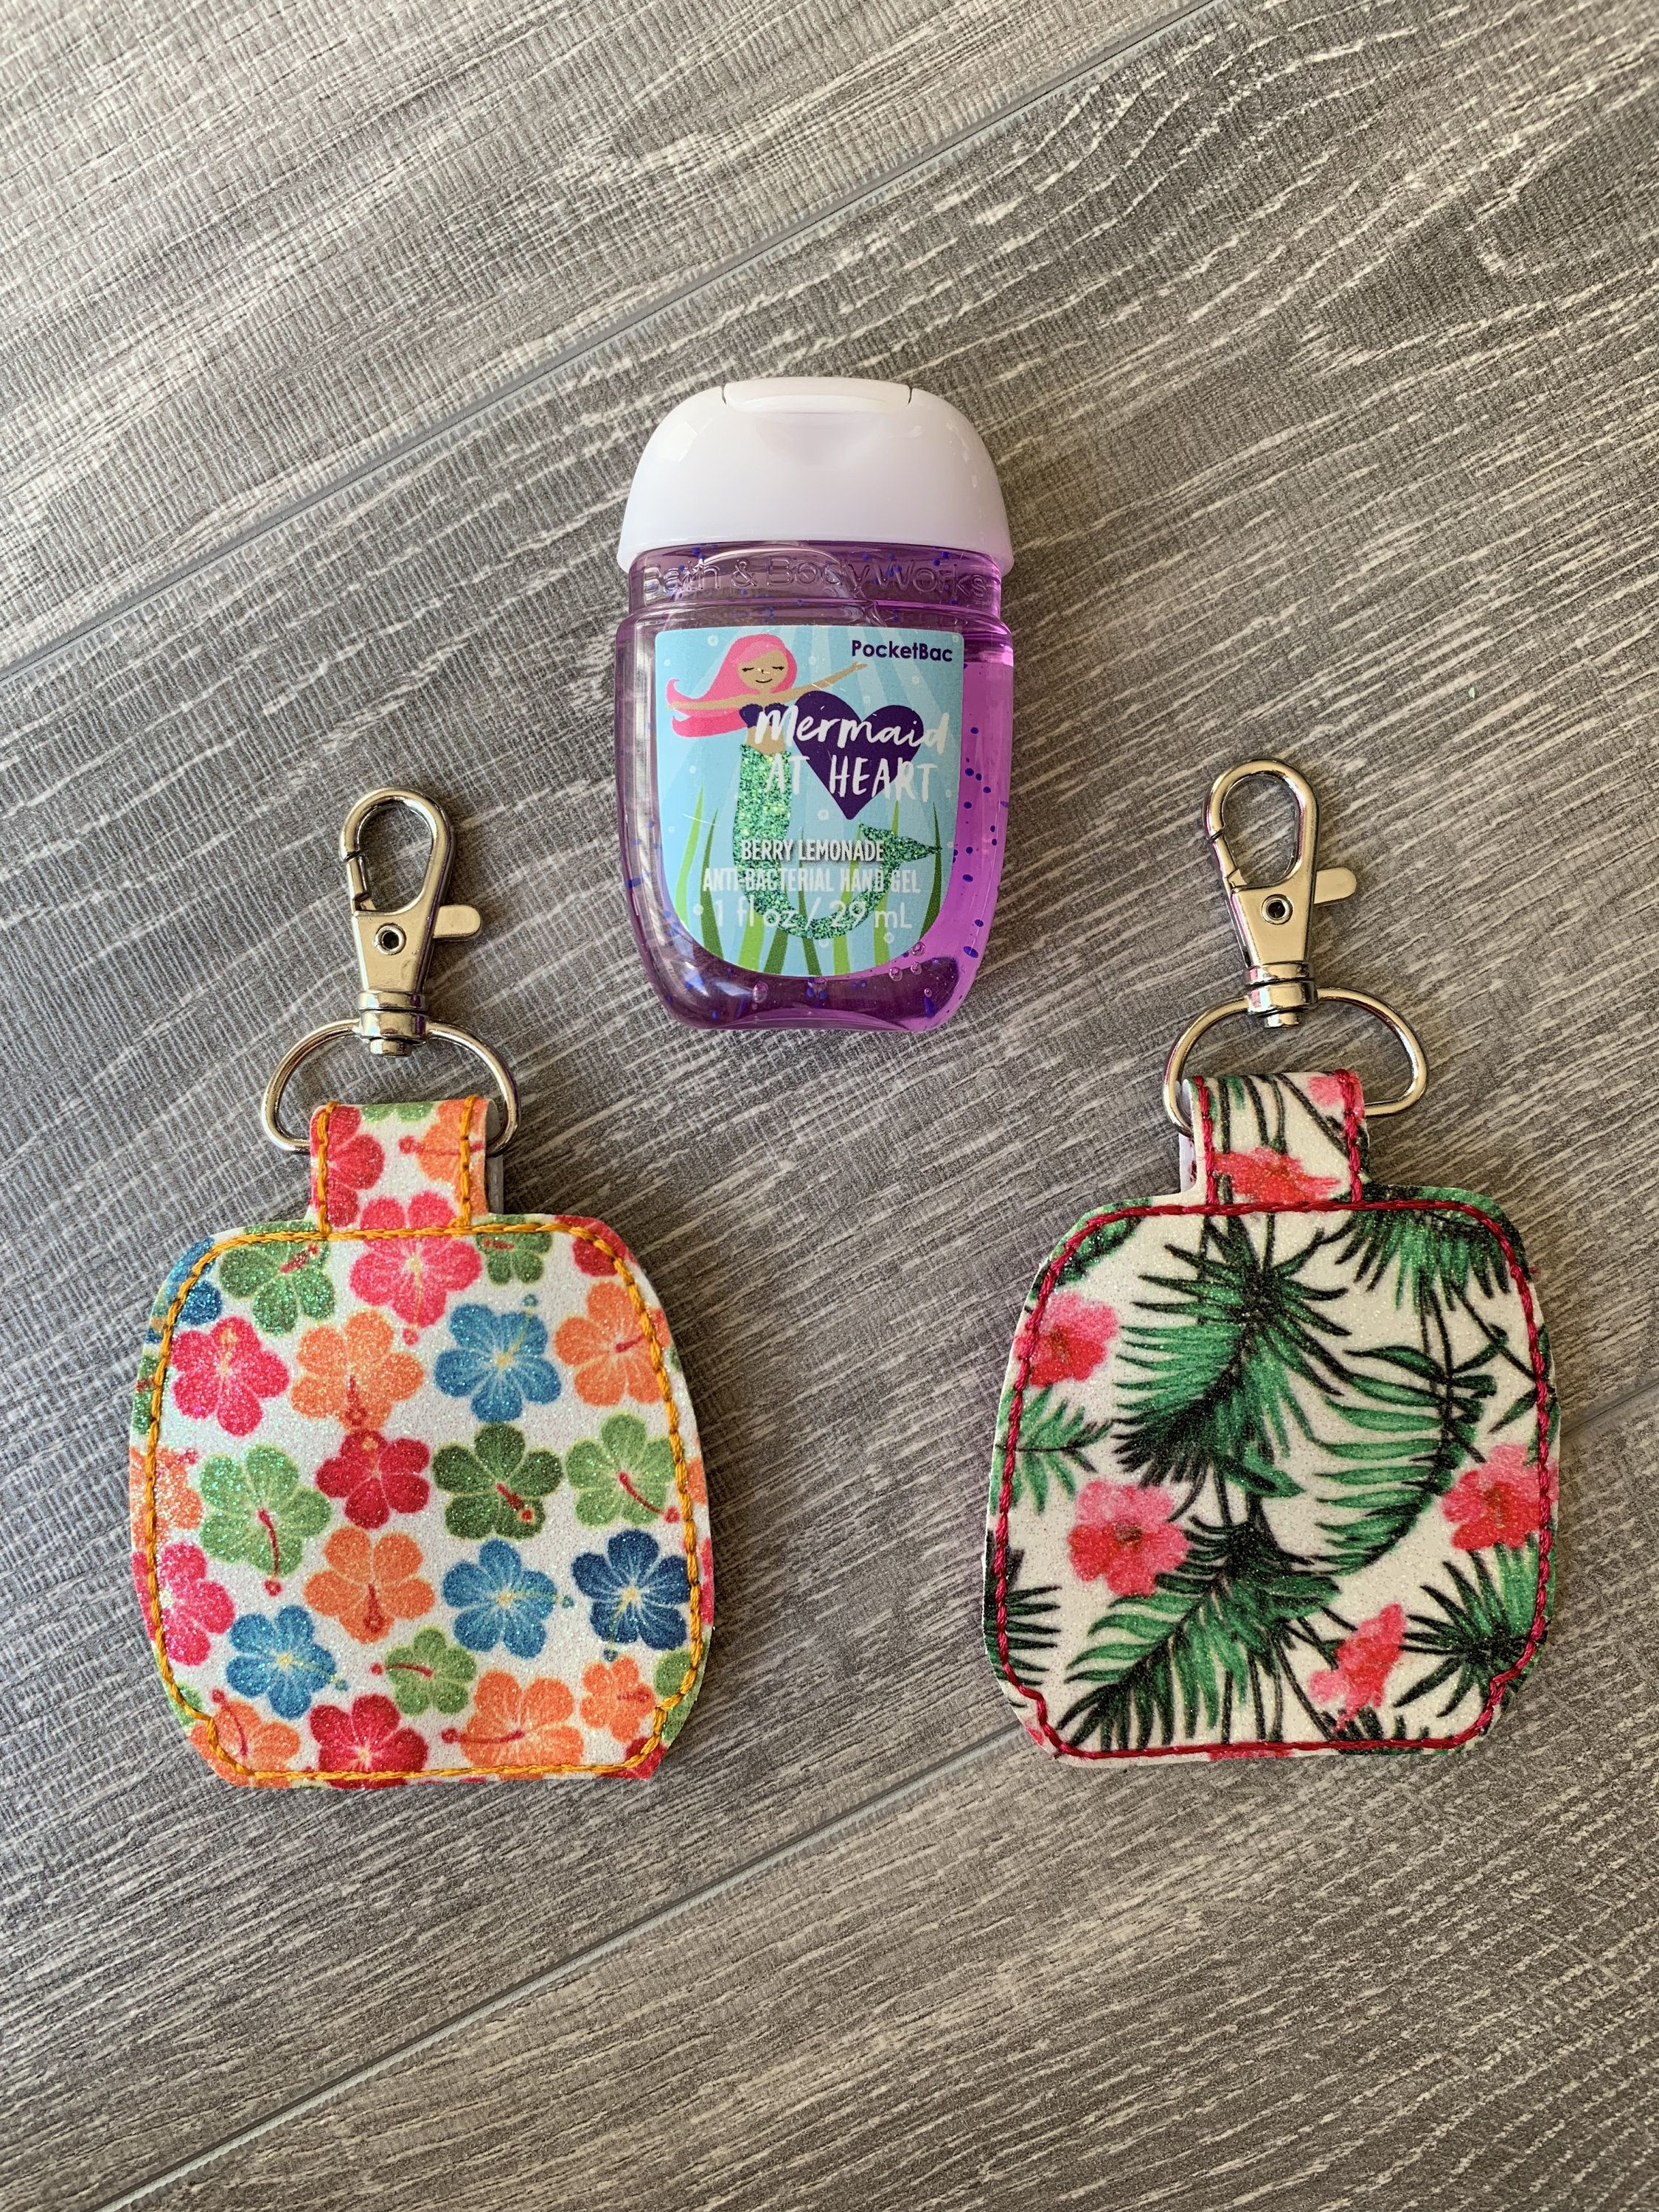 Hawaiian Hand Sanitizer Holder Sanitizer Holder Teacher Gift